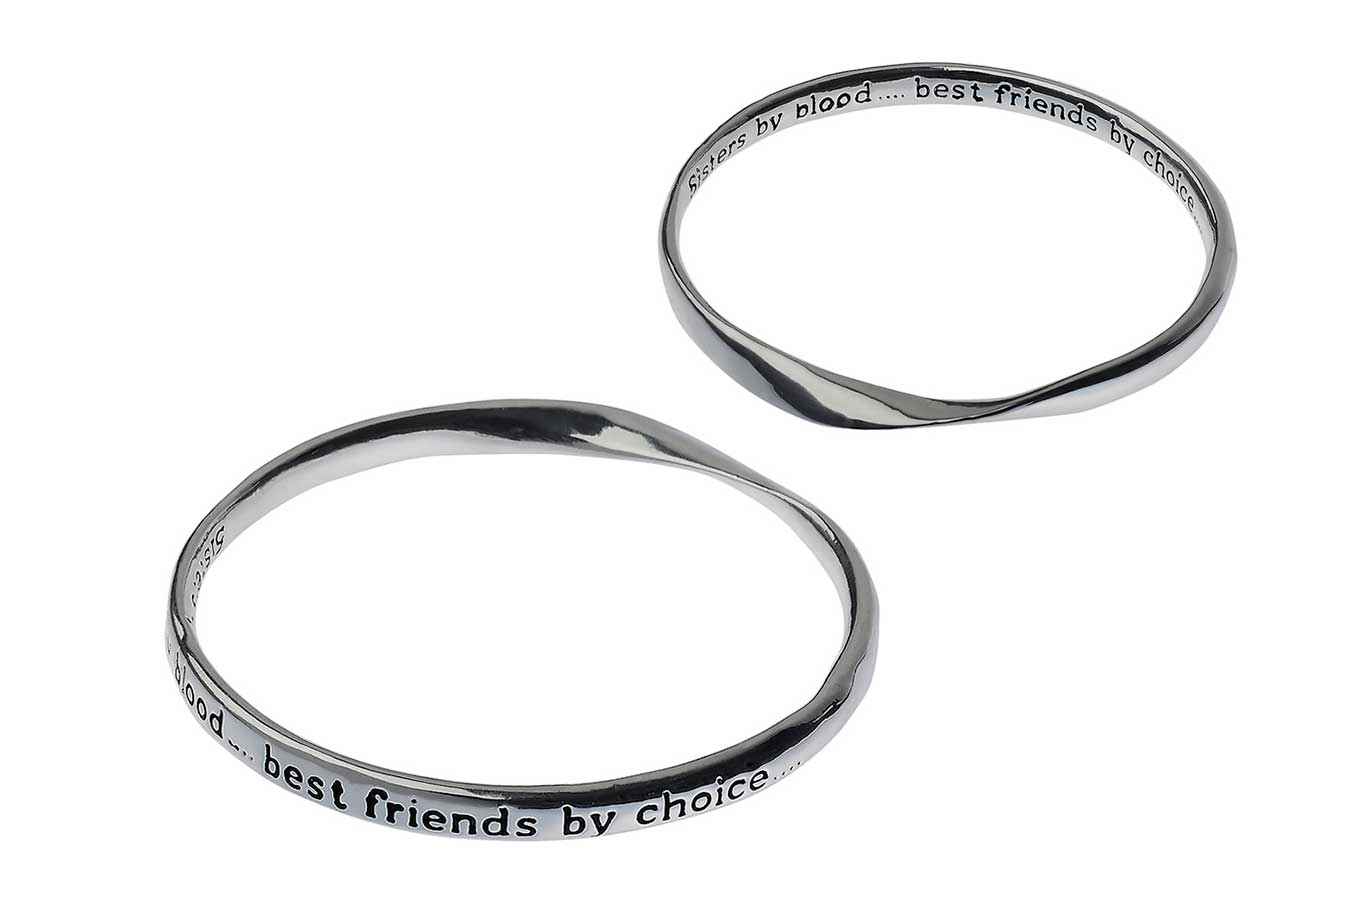 Silver Message Bangle - Sisters by blood....best friends by choice…